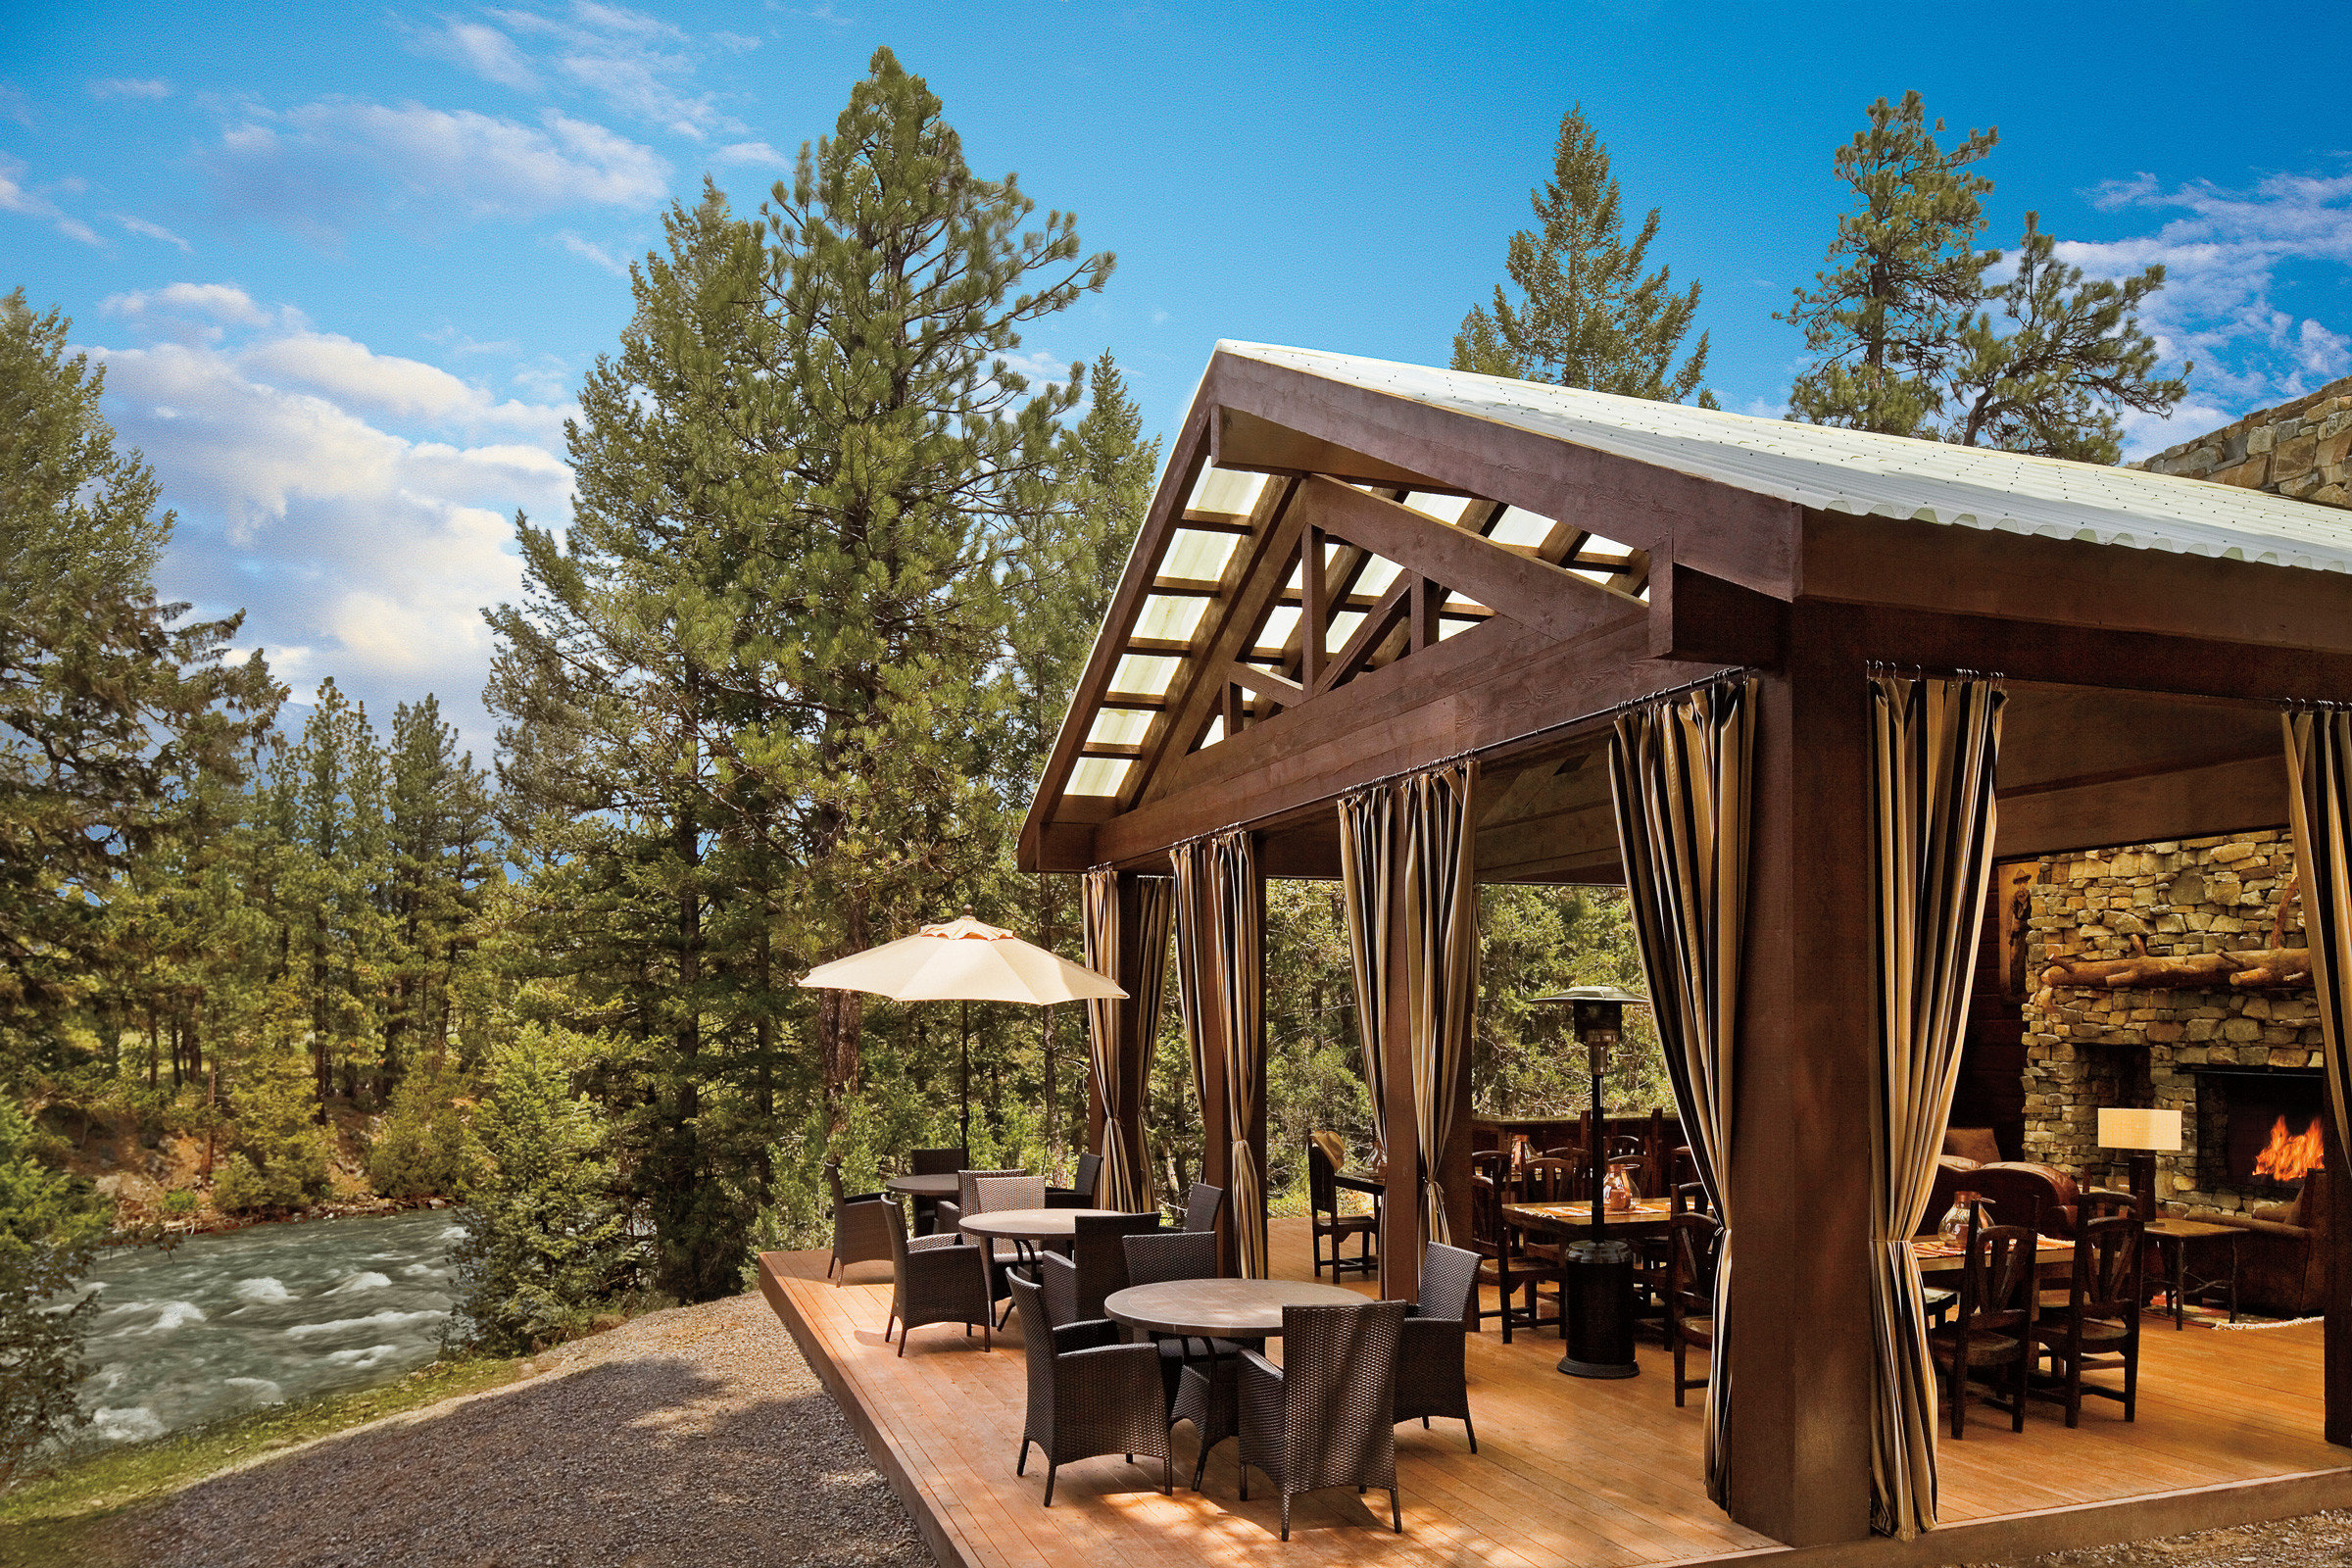 Glamping Hotels Montana Outdoors + Adventure Trip Ideas tree sky property building home log cabin cottage outdoor structure Resort